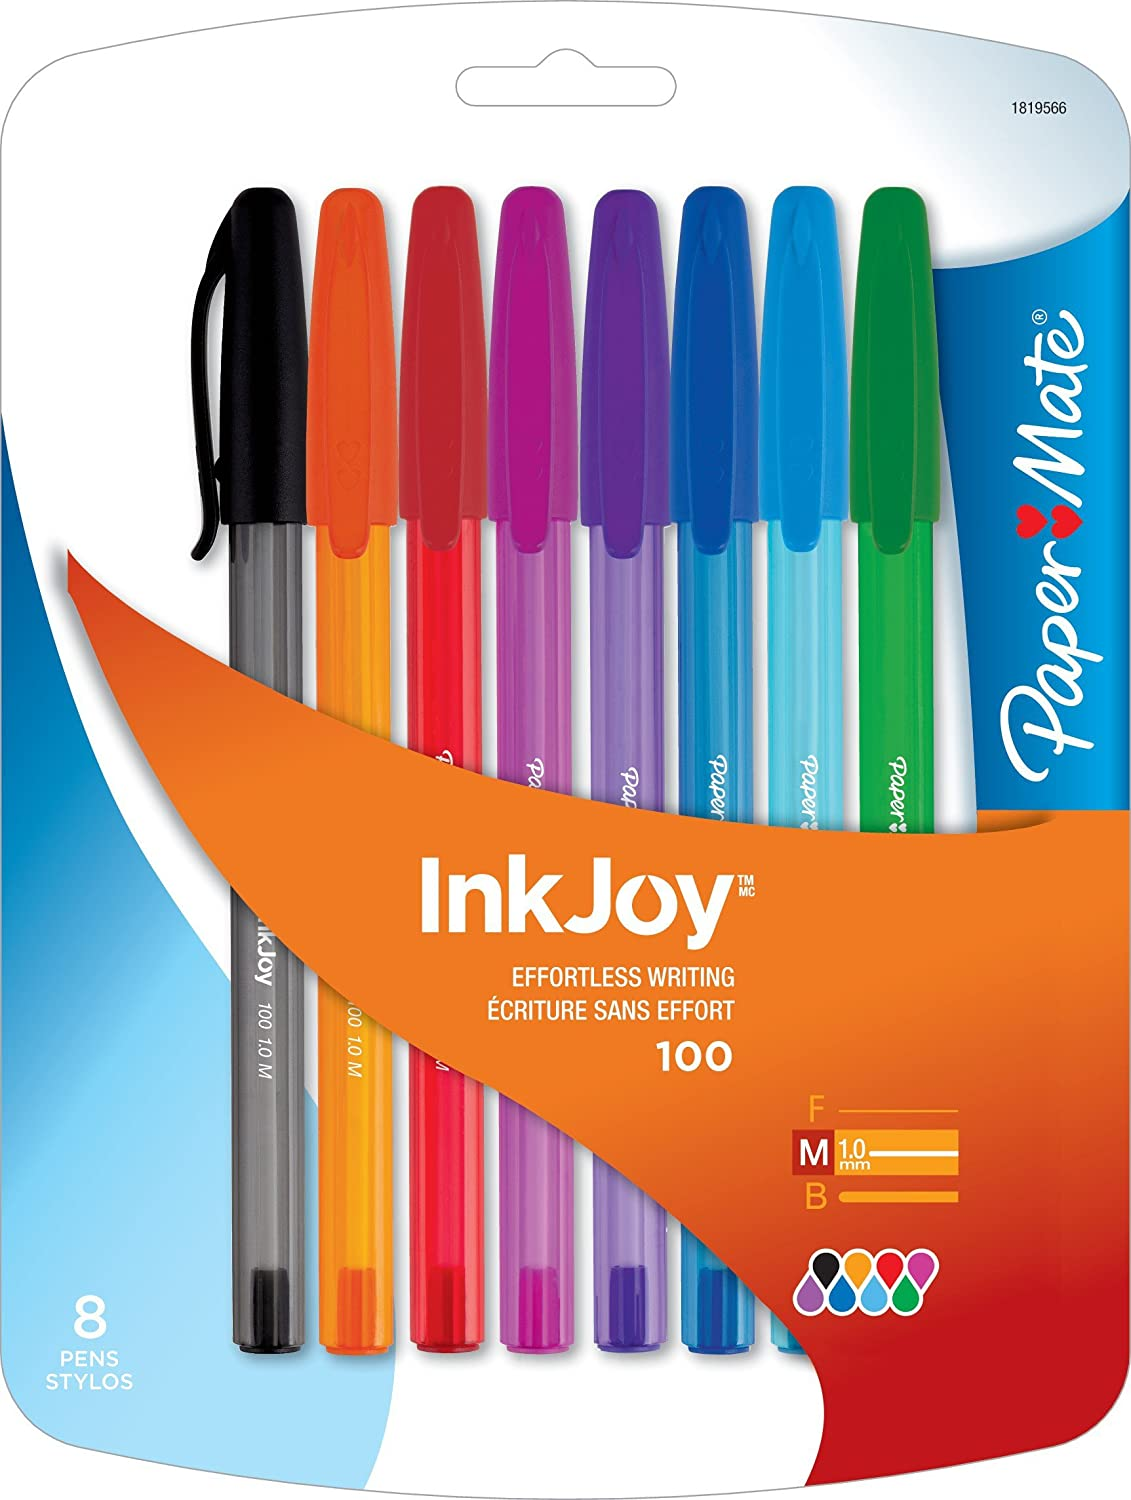 Paper Mate InkJoy 100ST Ballpoint Pen, Medium, Fashion Colors, Set of 8 (1819566)